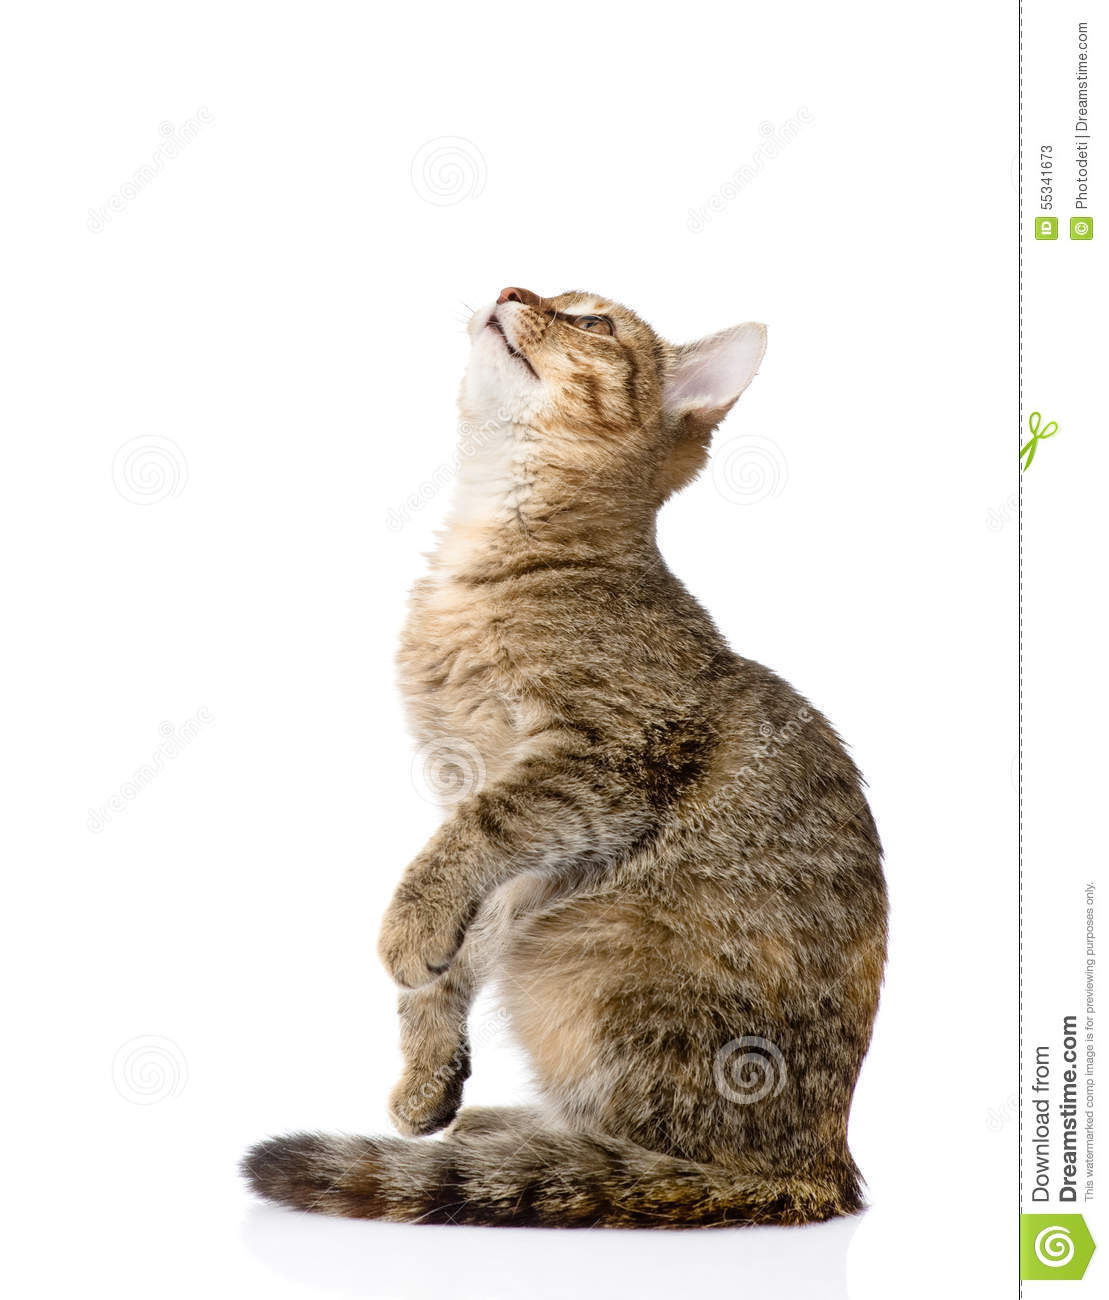 cat-sitting-profile-looking-up-isolated-white-background-55341673.jpg